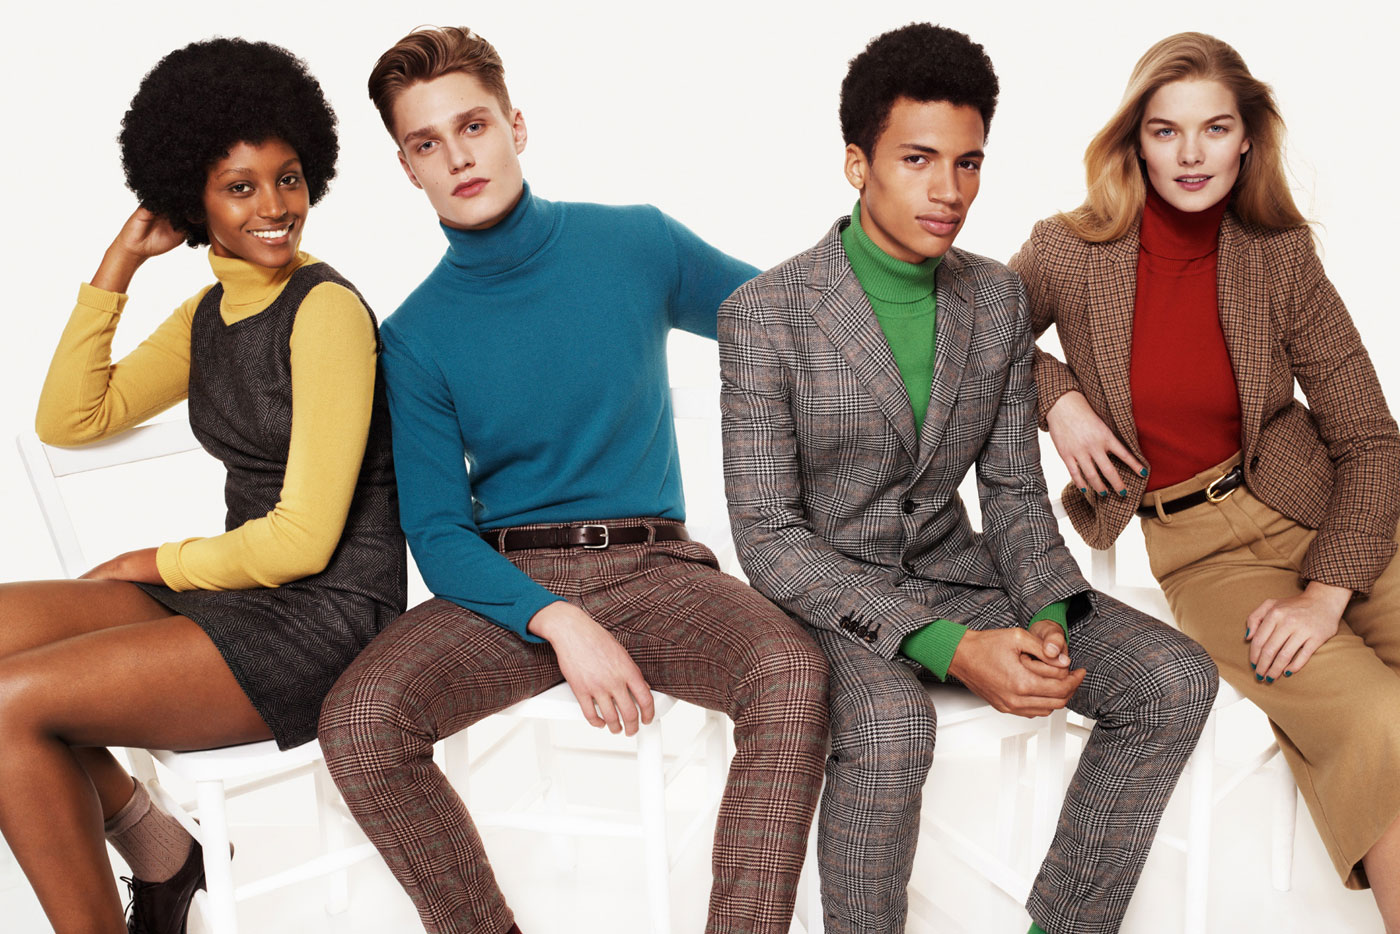 4ps for united colors of benetton United colors of benetton we're an international brand with an italian style, since 1965 color, knitwear and social commitment are fundamental pillars of ou united colors of benetton we're an international brand with an italian style, since 1965.